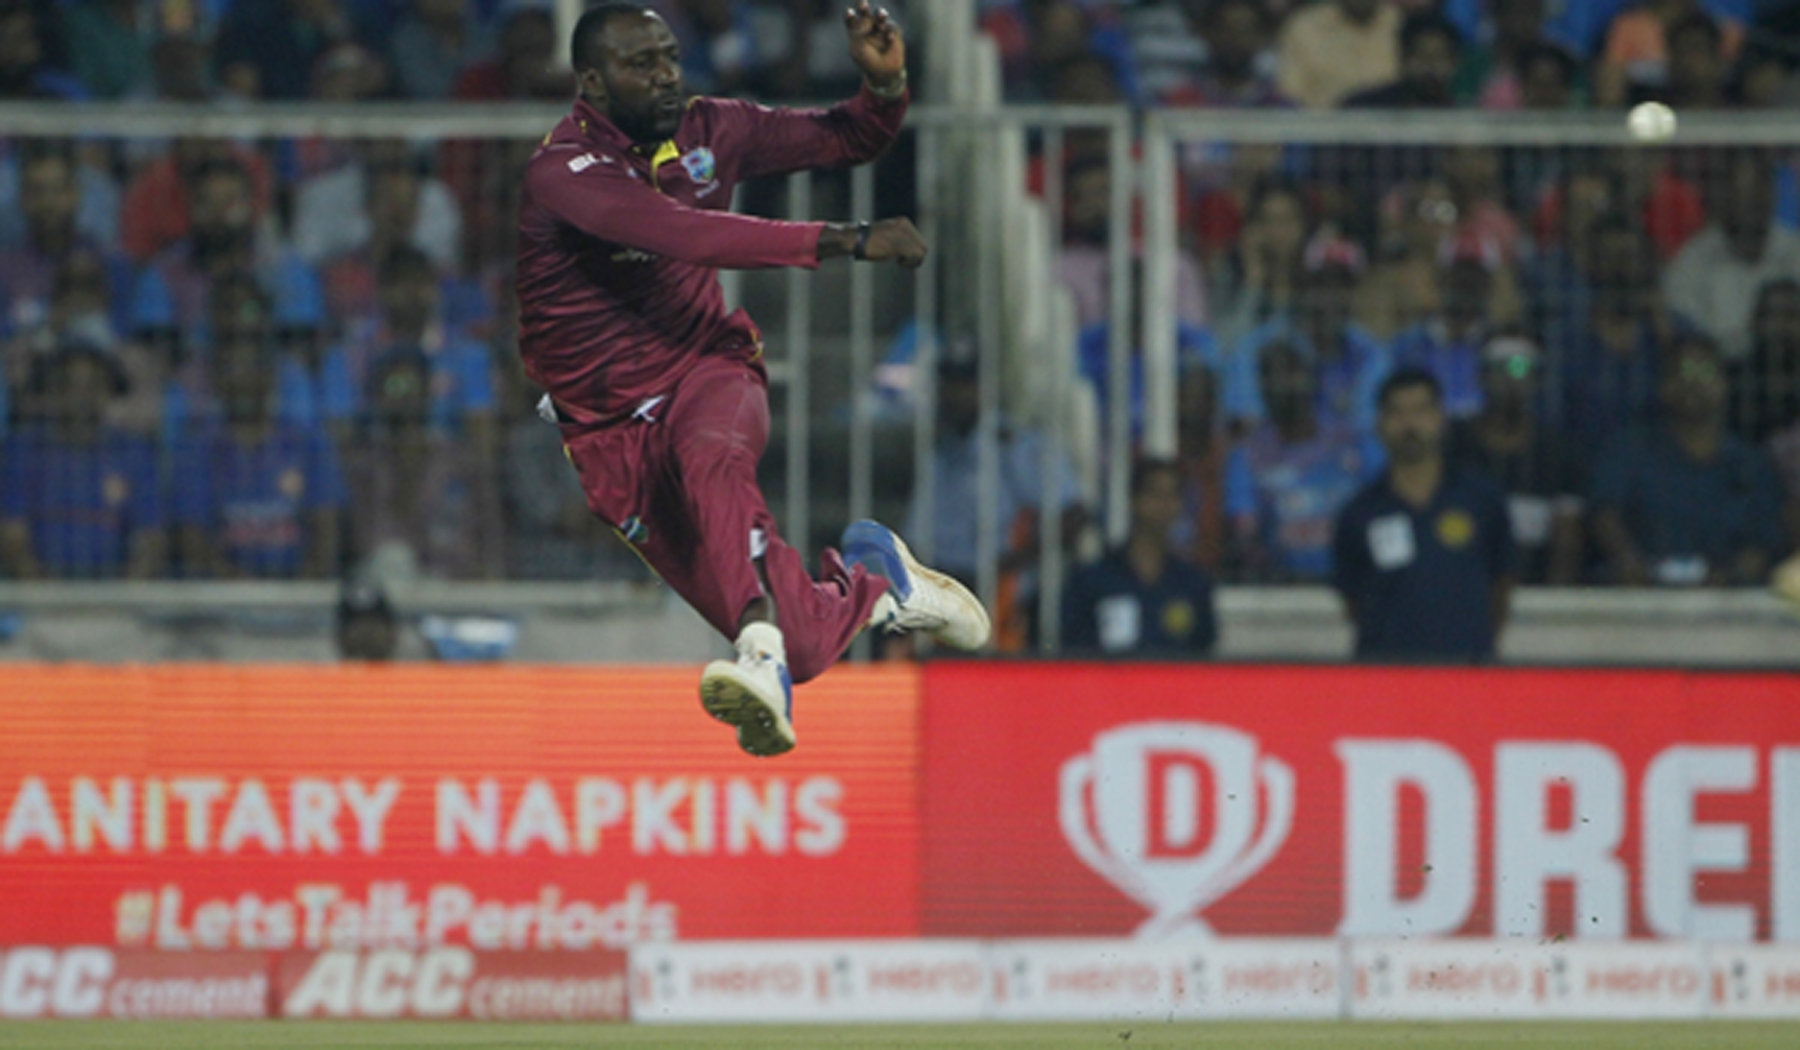 Thiruvananthapuram: West Indies' Kesrick Williams in action during the second T20I match between India and West Indies at the Greenfield International Stadium in Thiruvananthapuram, Kerala on Dec 8, 2019. (Photo: Surjeet Yadav/IANS)